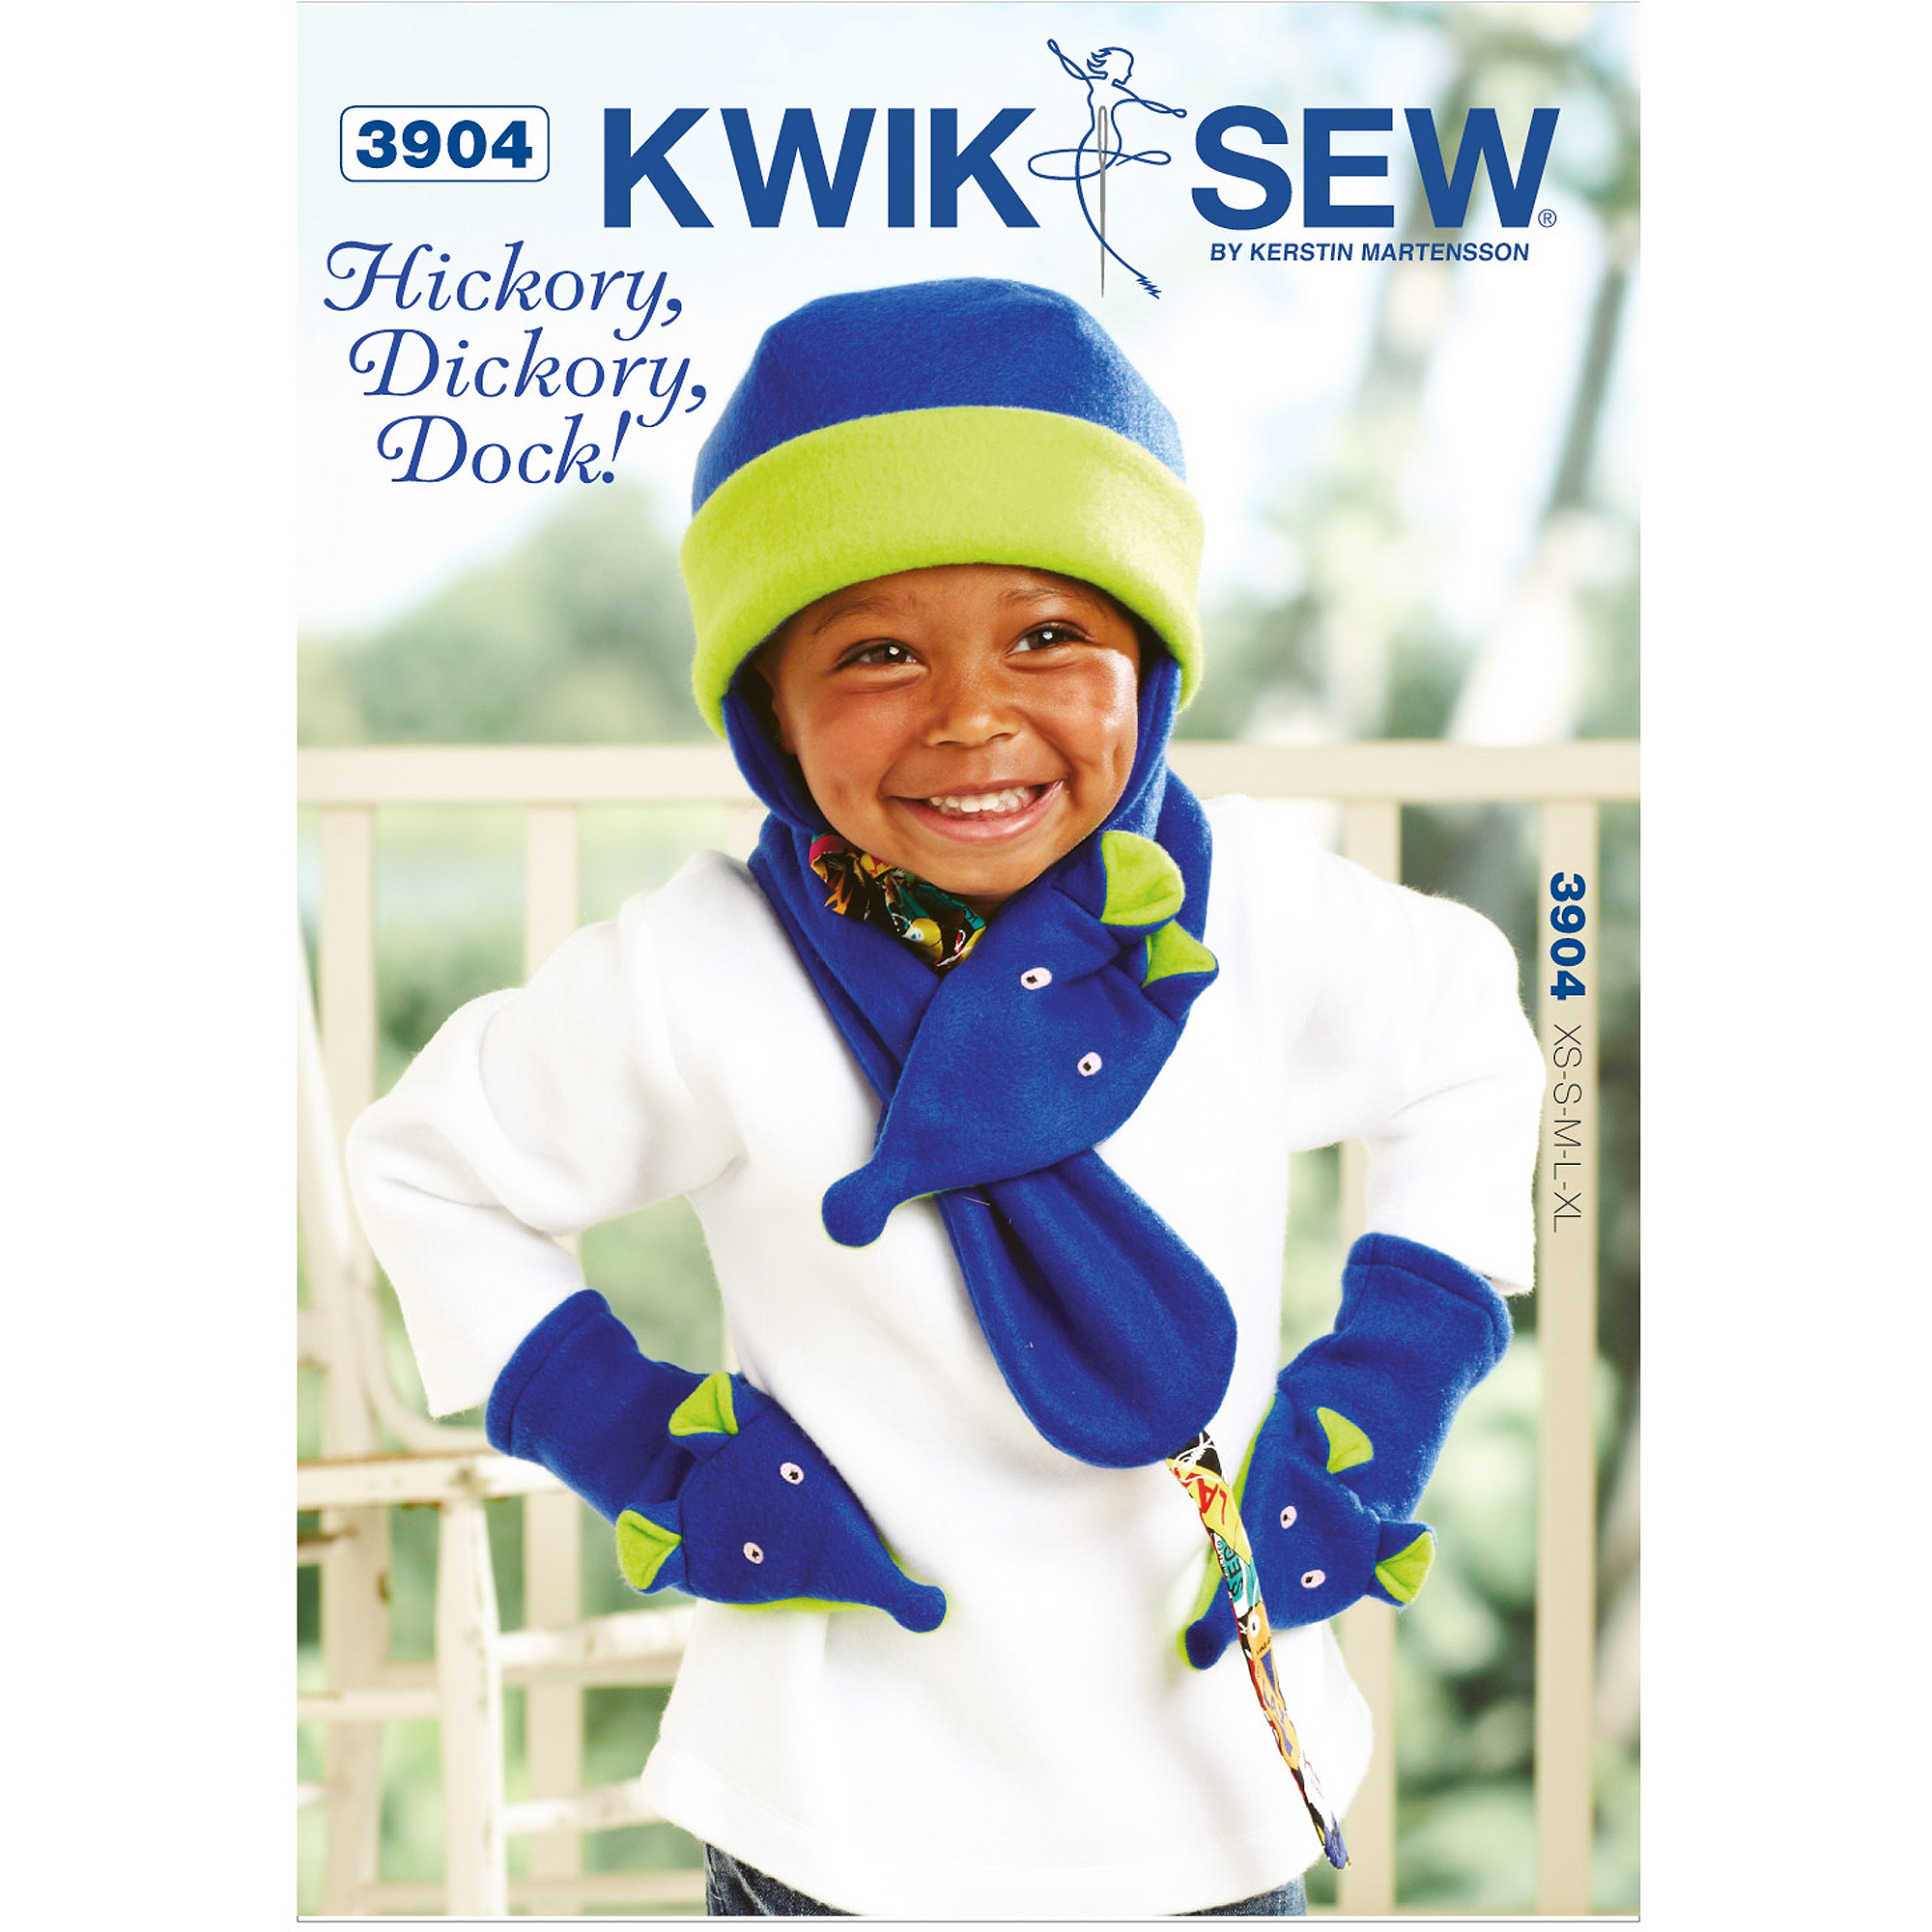 Kwik Sew Pattern Hickory, Dickory, Dock! Hat: (XS, S, M, L, XL), Scarf: One Size